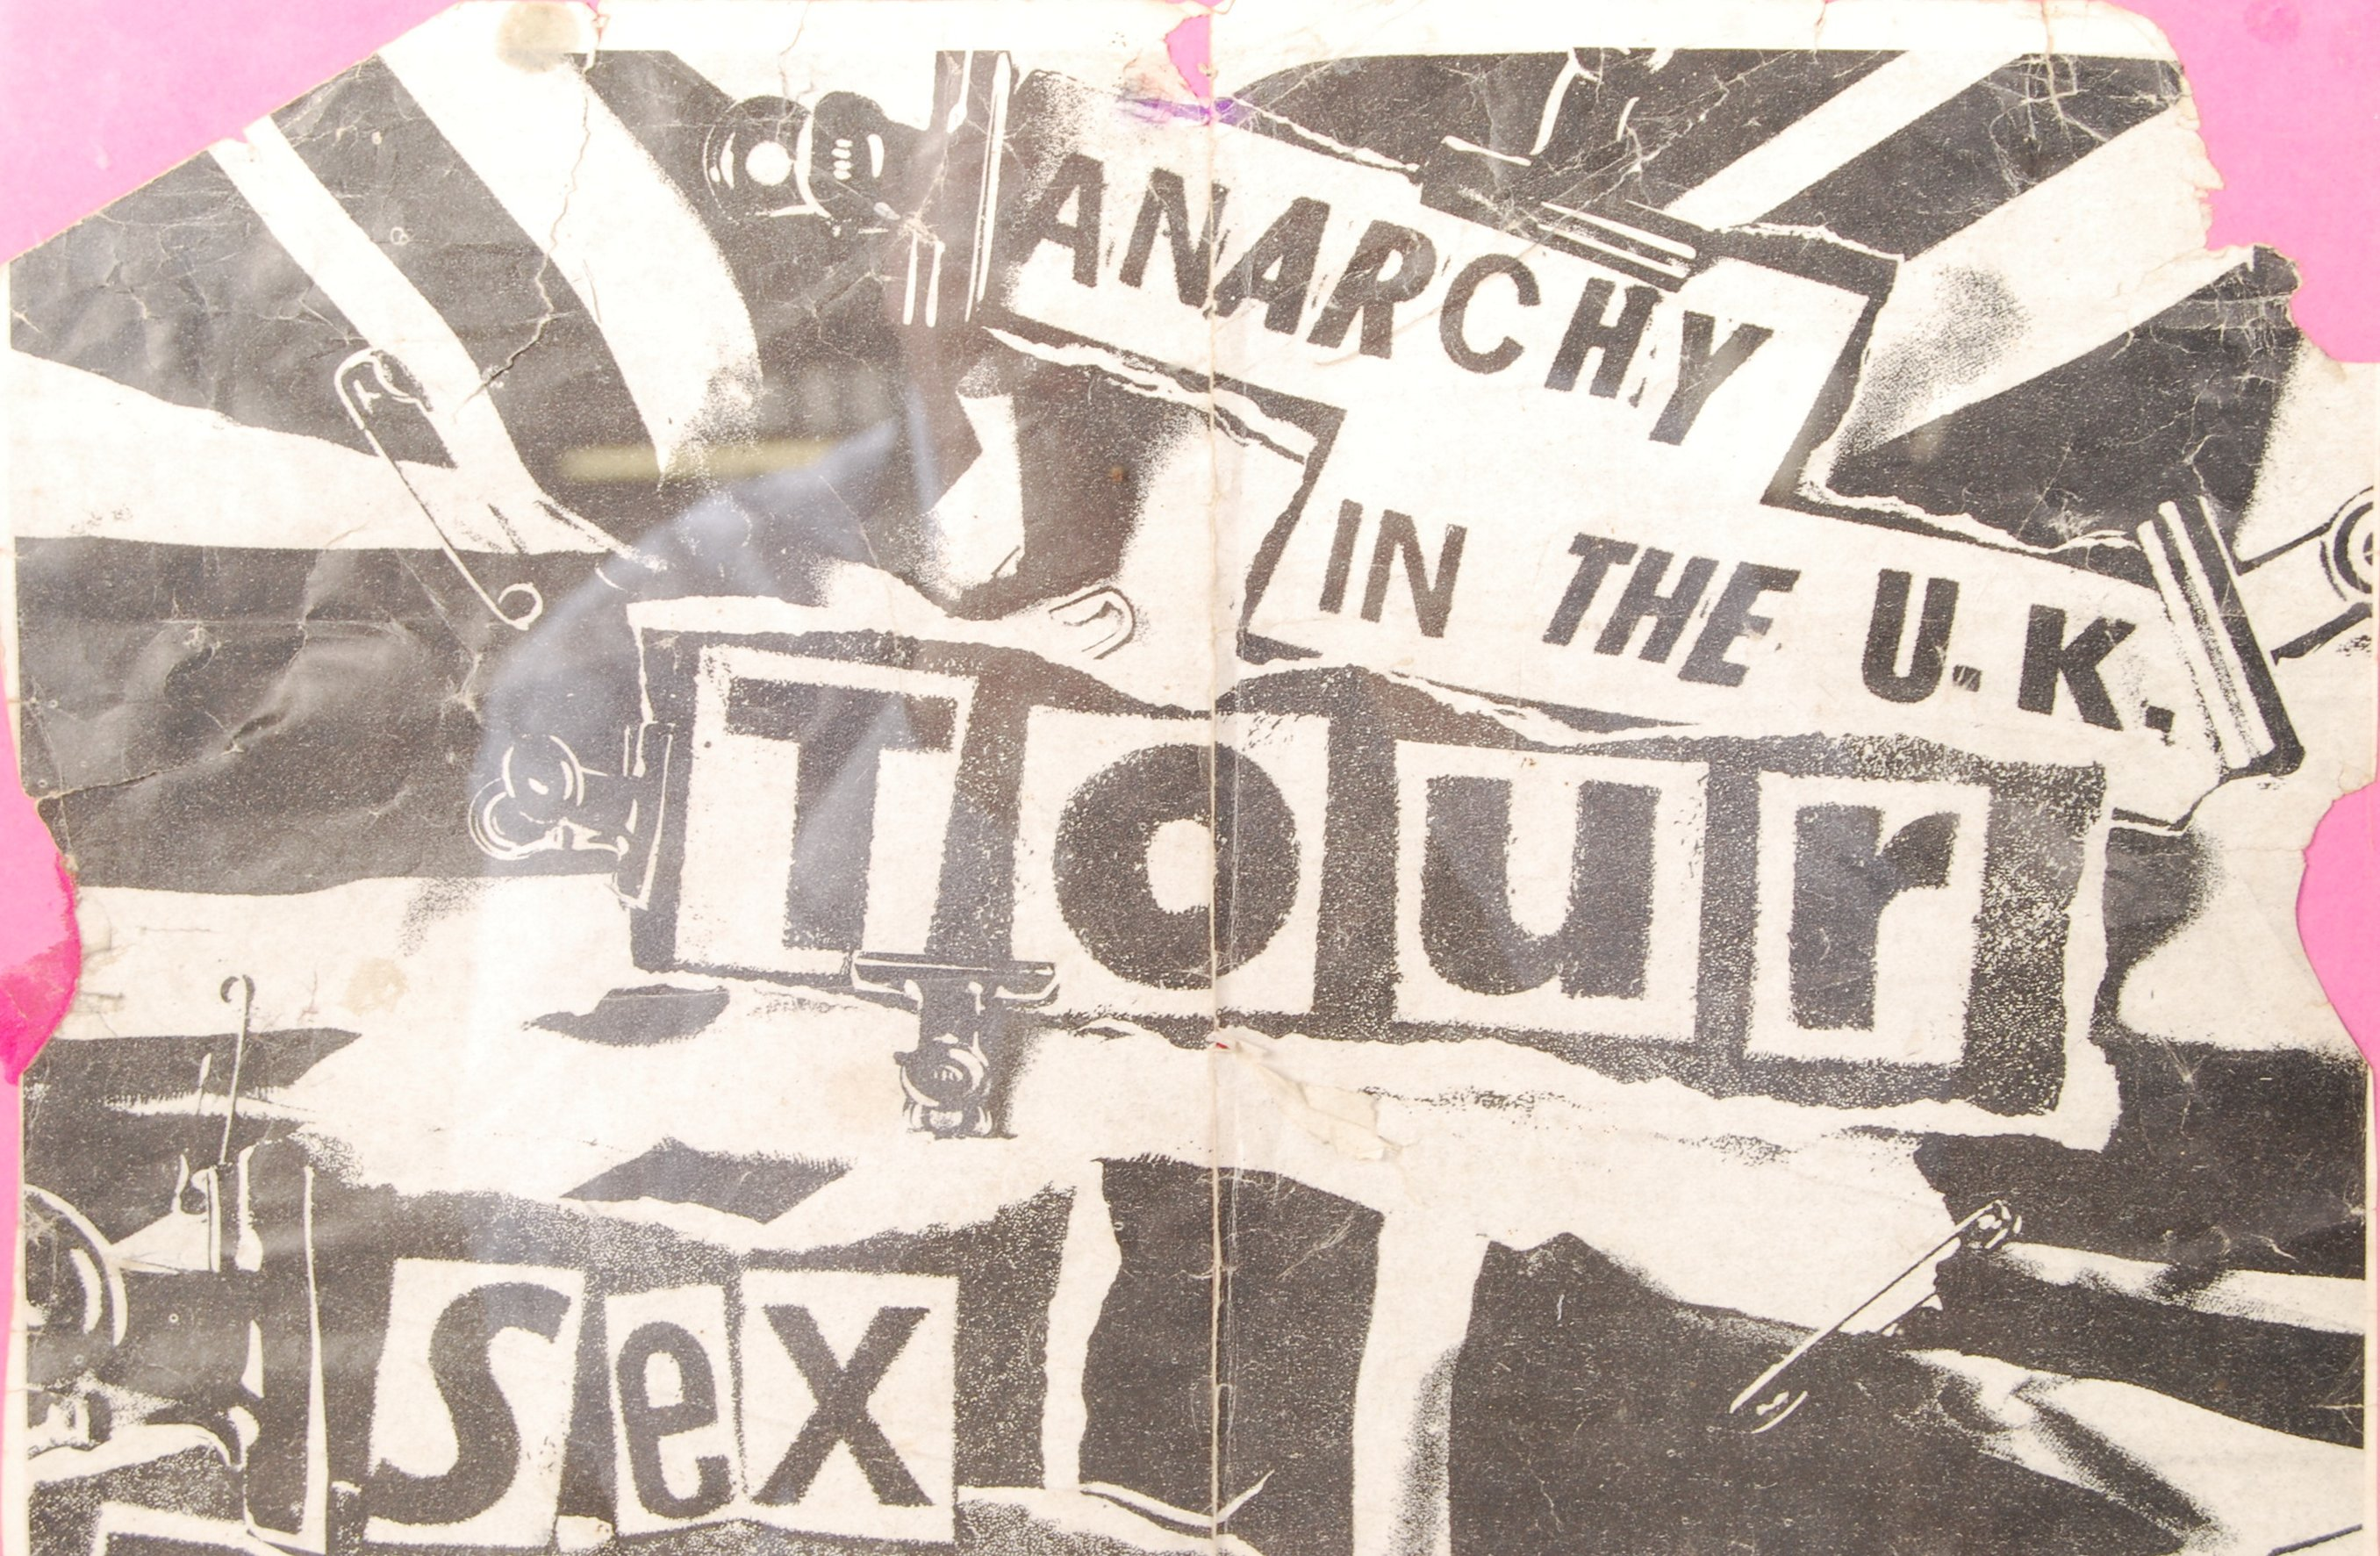 Lot 7 - RARE ORIGINAL SEX PISTOLS ANARCHY IN THE UK 1976 TOUR POSTER